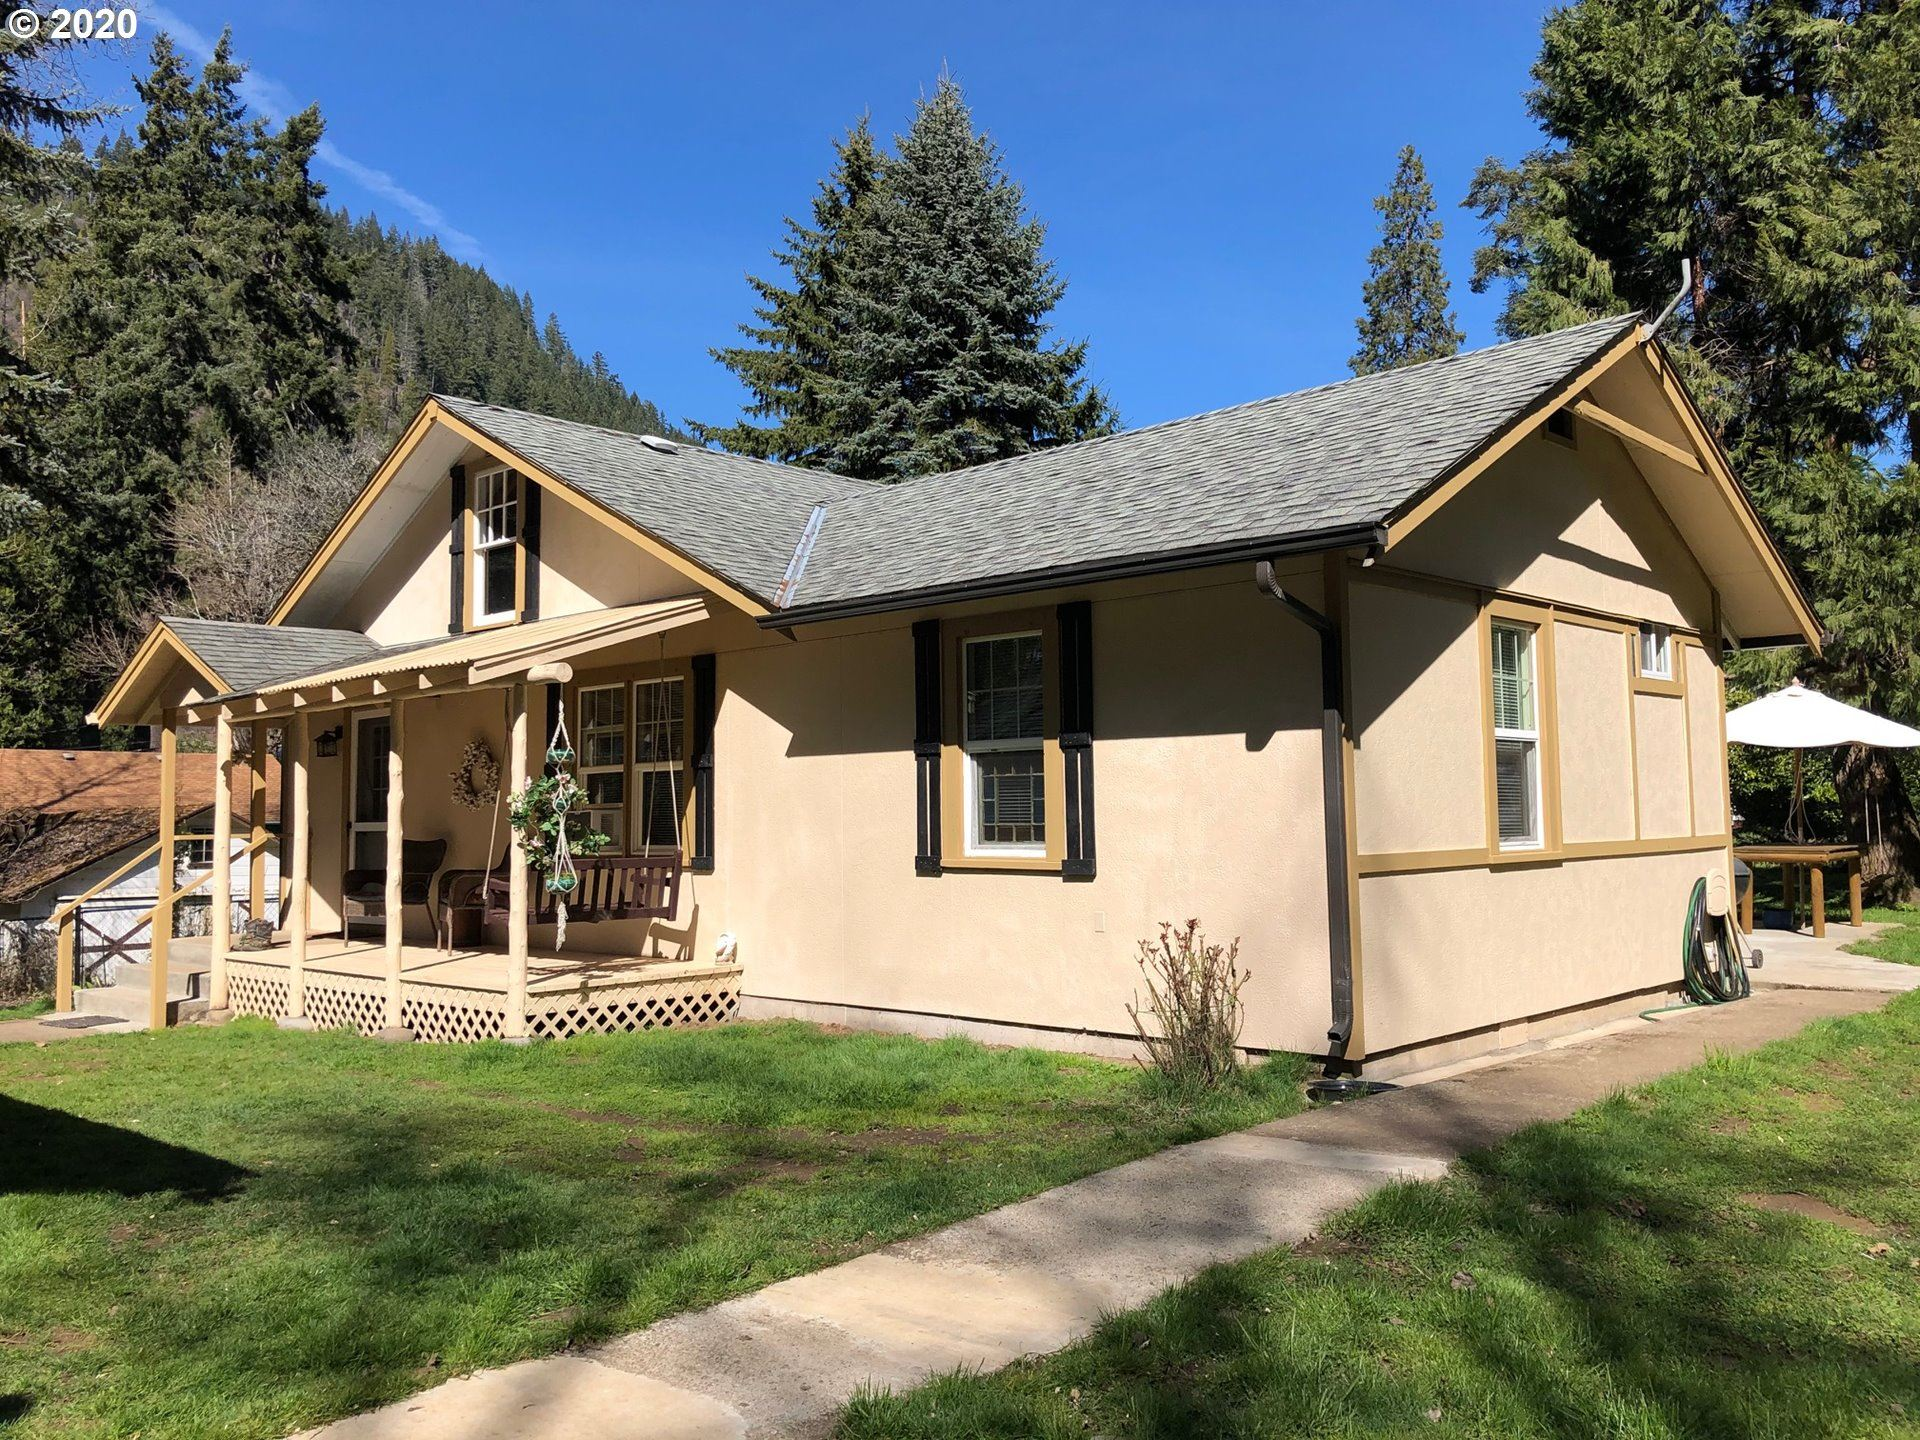 Photo for 47362 2ND ST, Westfir, OR 97492 (MLS # 20122633)